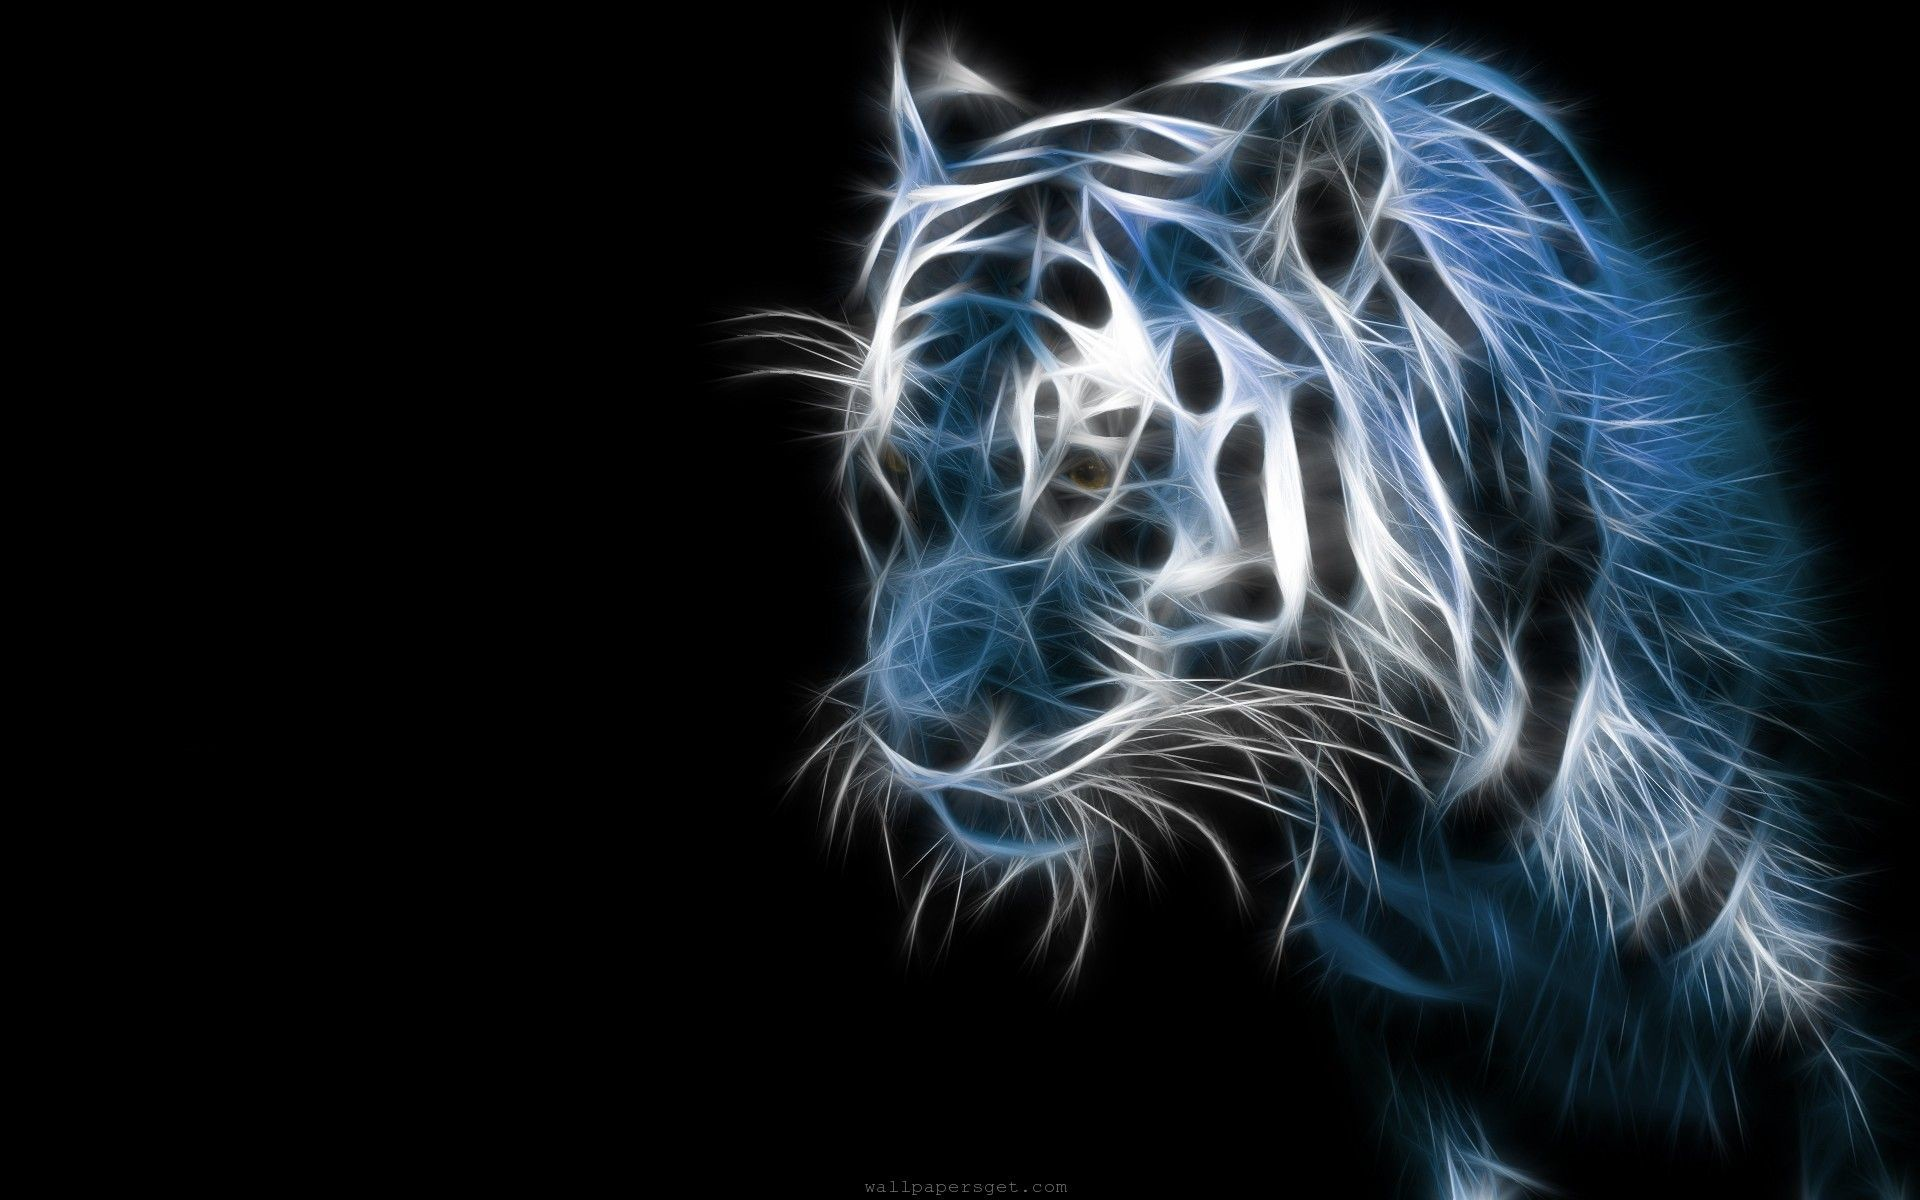 Cool Animal Wallpapers Free : Animal Wallpaper Tagzeo Blue Wolf Wallpaper  Digital Art Wallpapers Cool Wolves 1920×1200